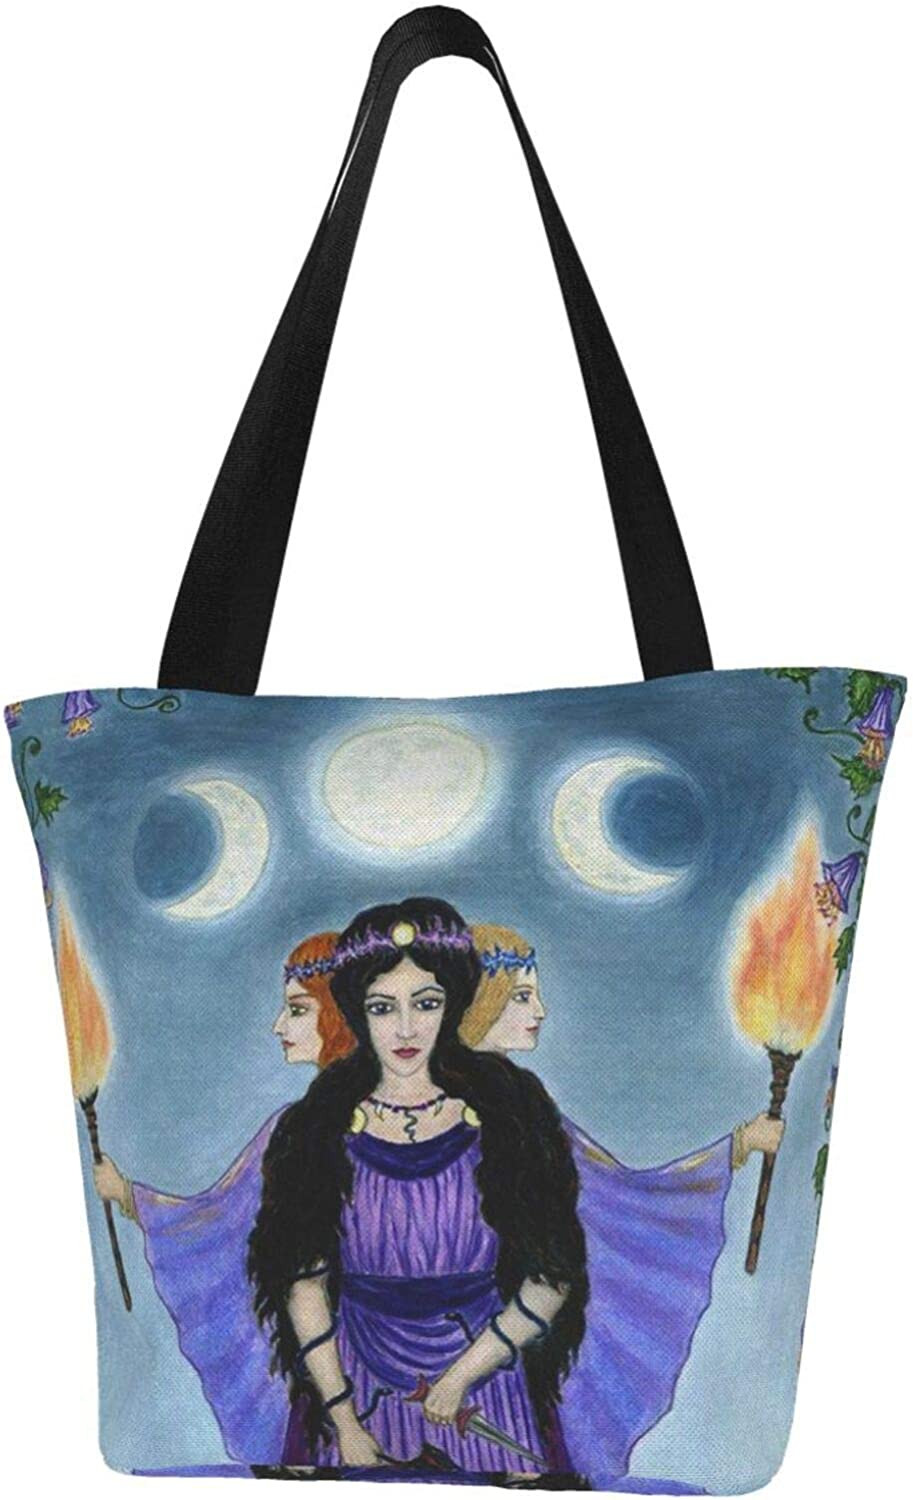 Wicca Wiccan Triple Moon Goddess Fire Themed Printed Women Canvas Handbag Zipper Shoulder Bag Work Booksbag Tote Purse Leisure Hobo Bag For Shopping